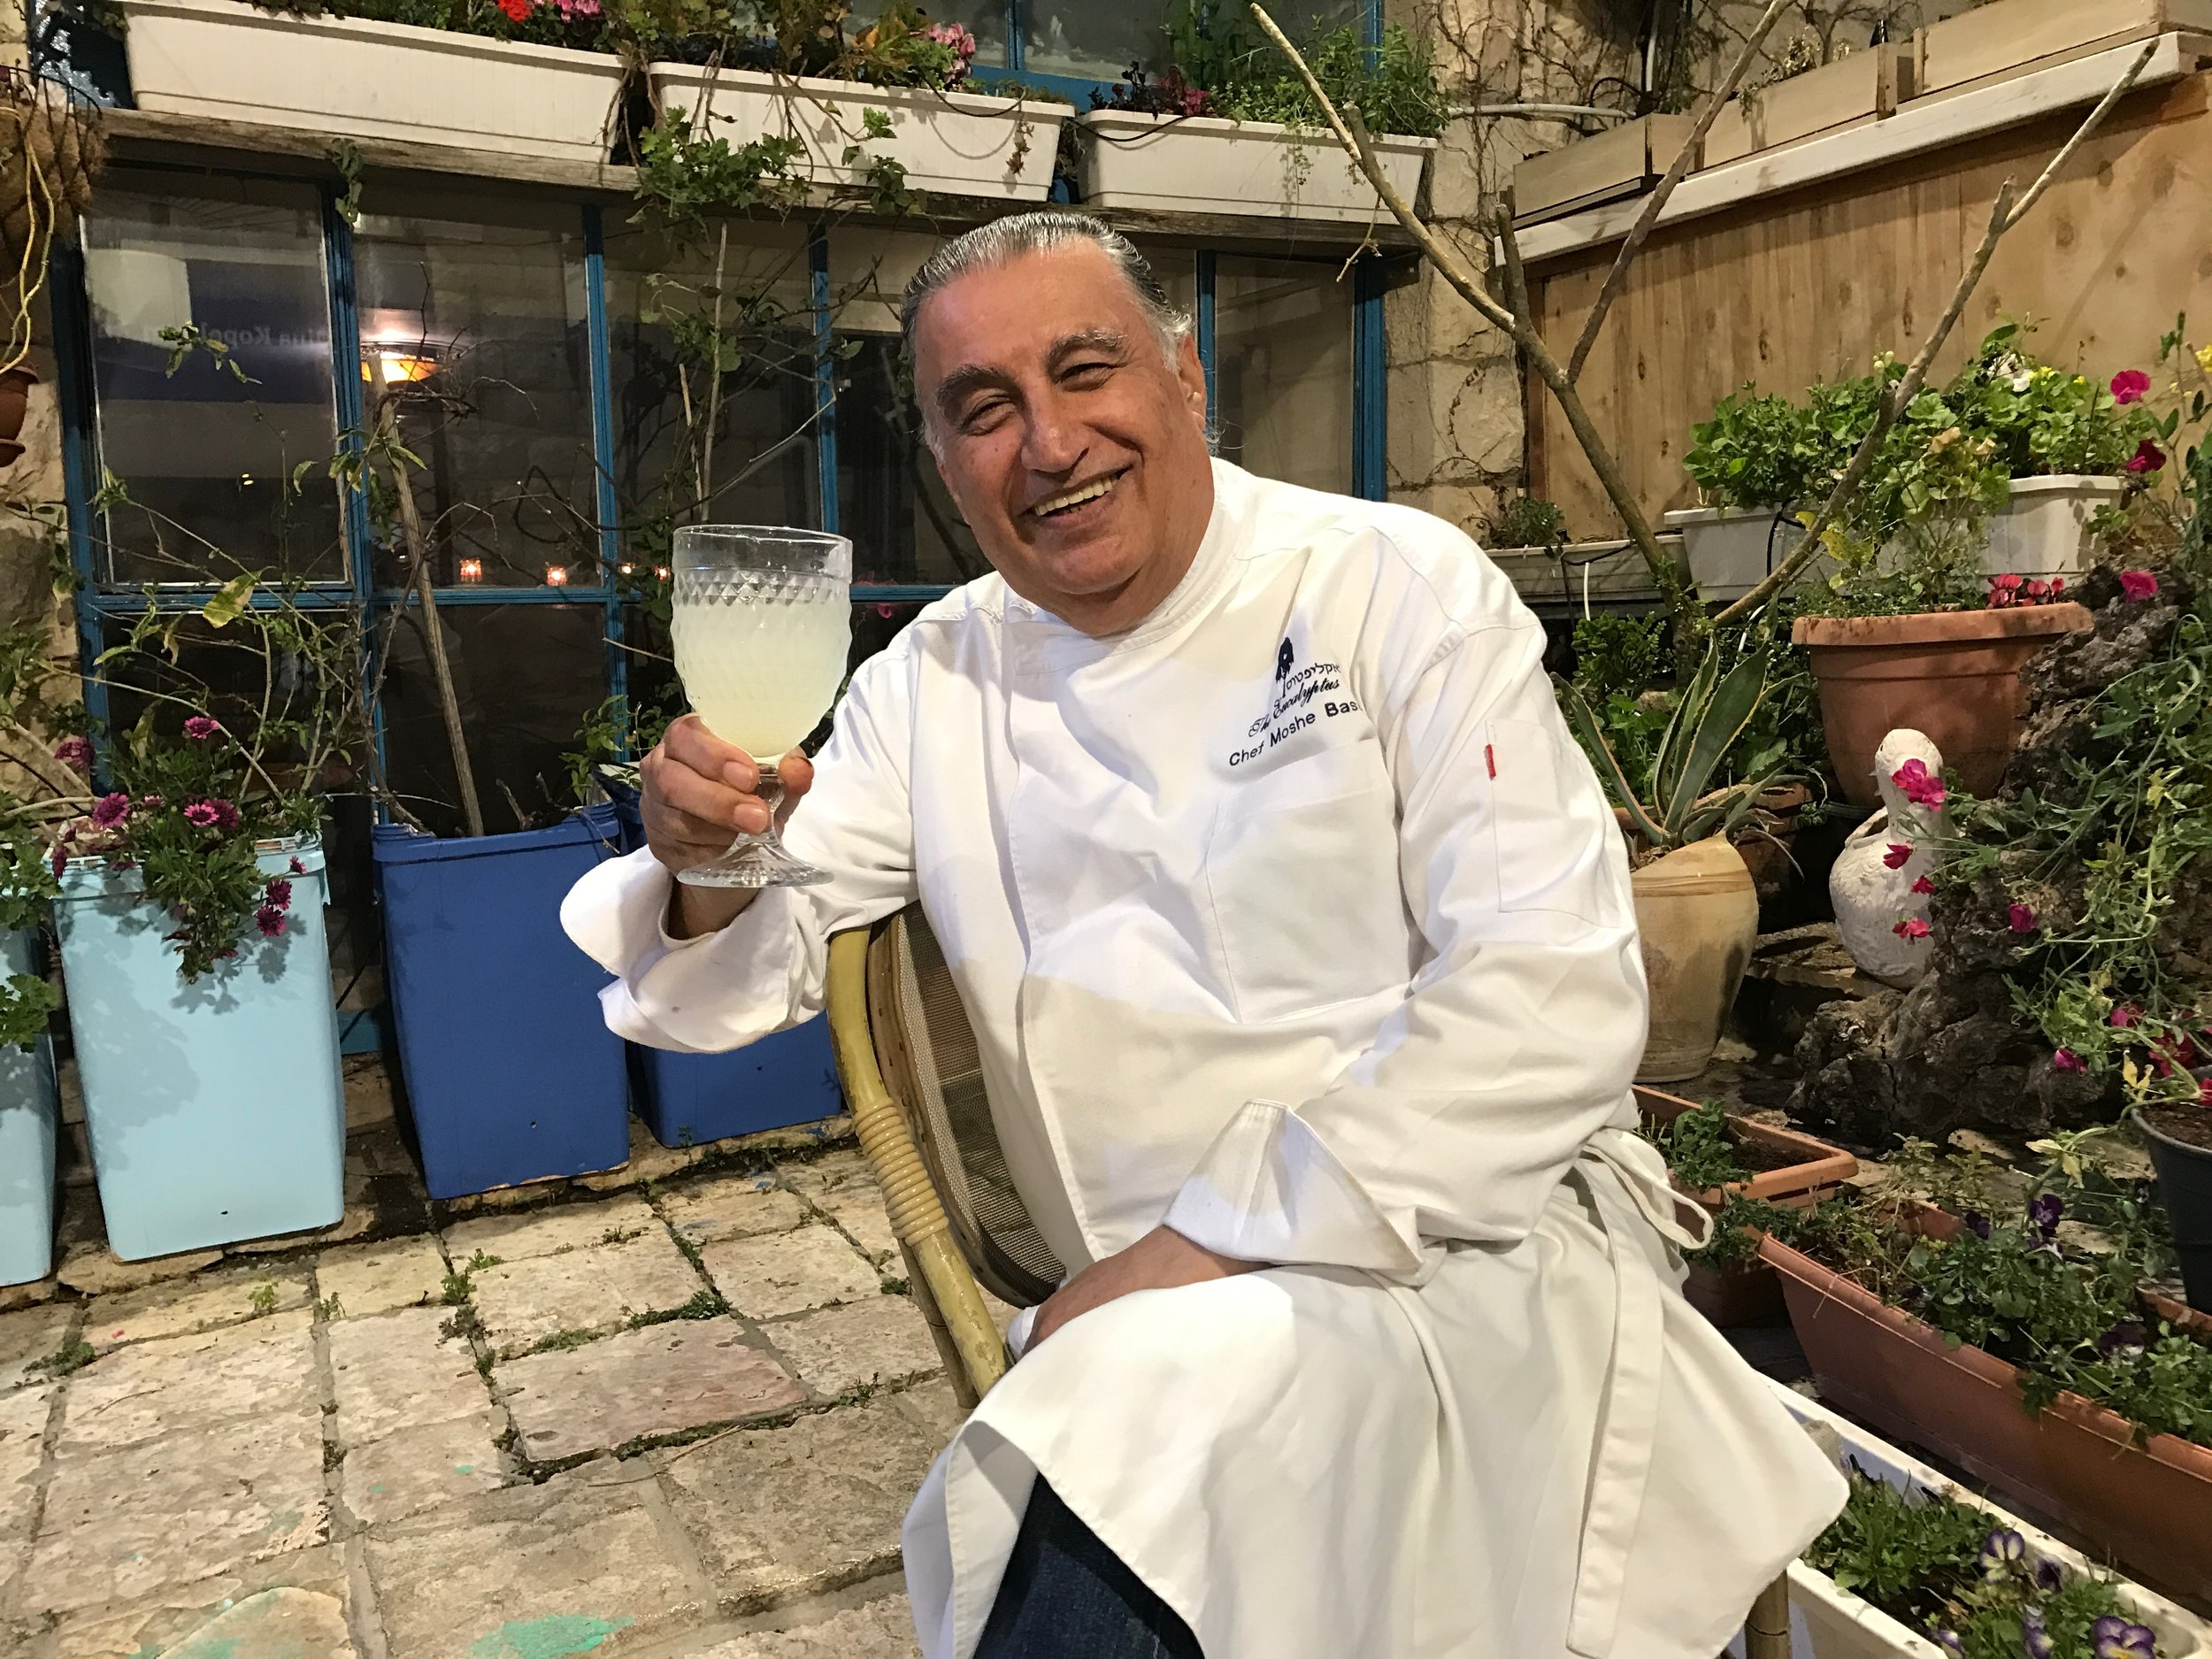 Owner and chef Moshe Basson